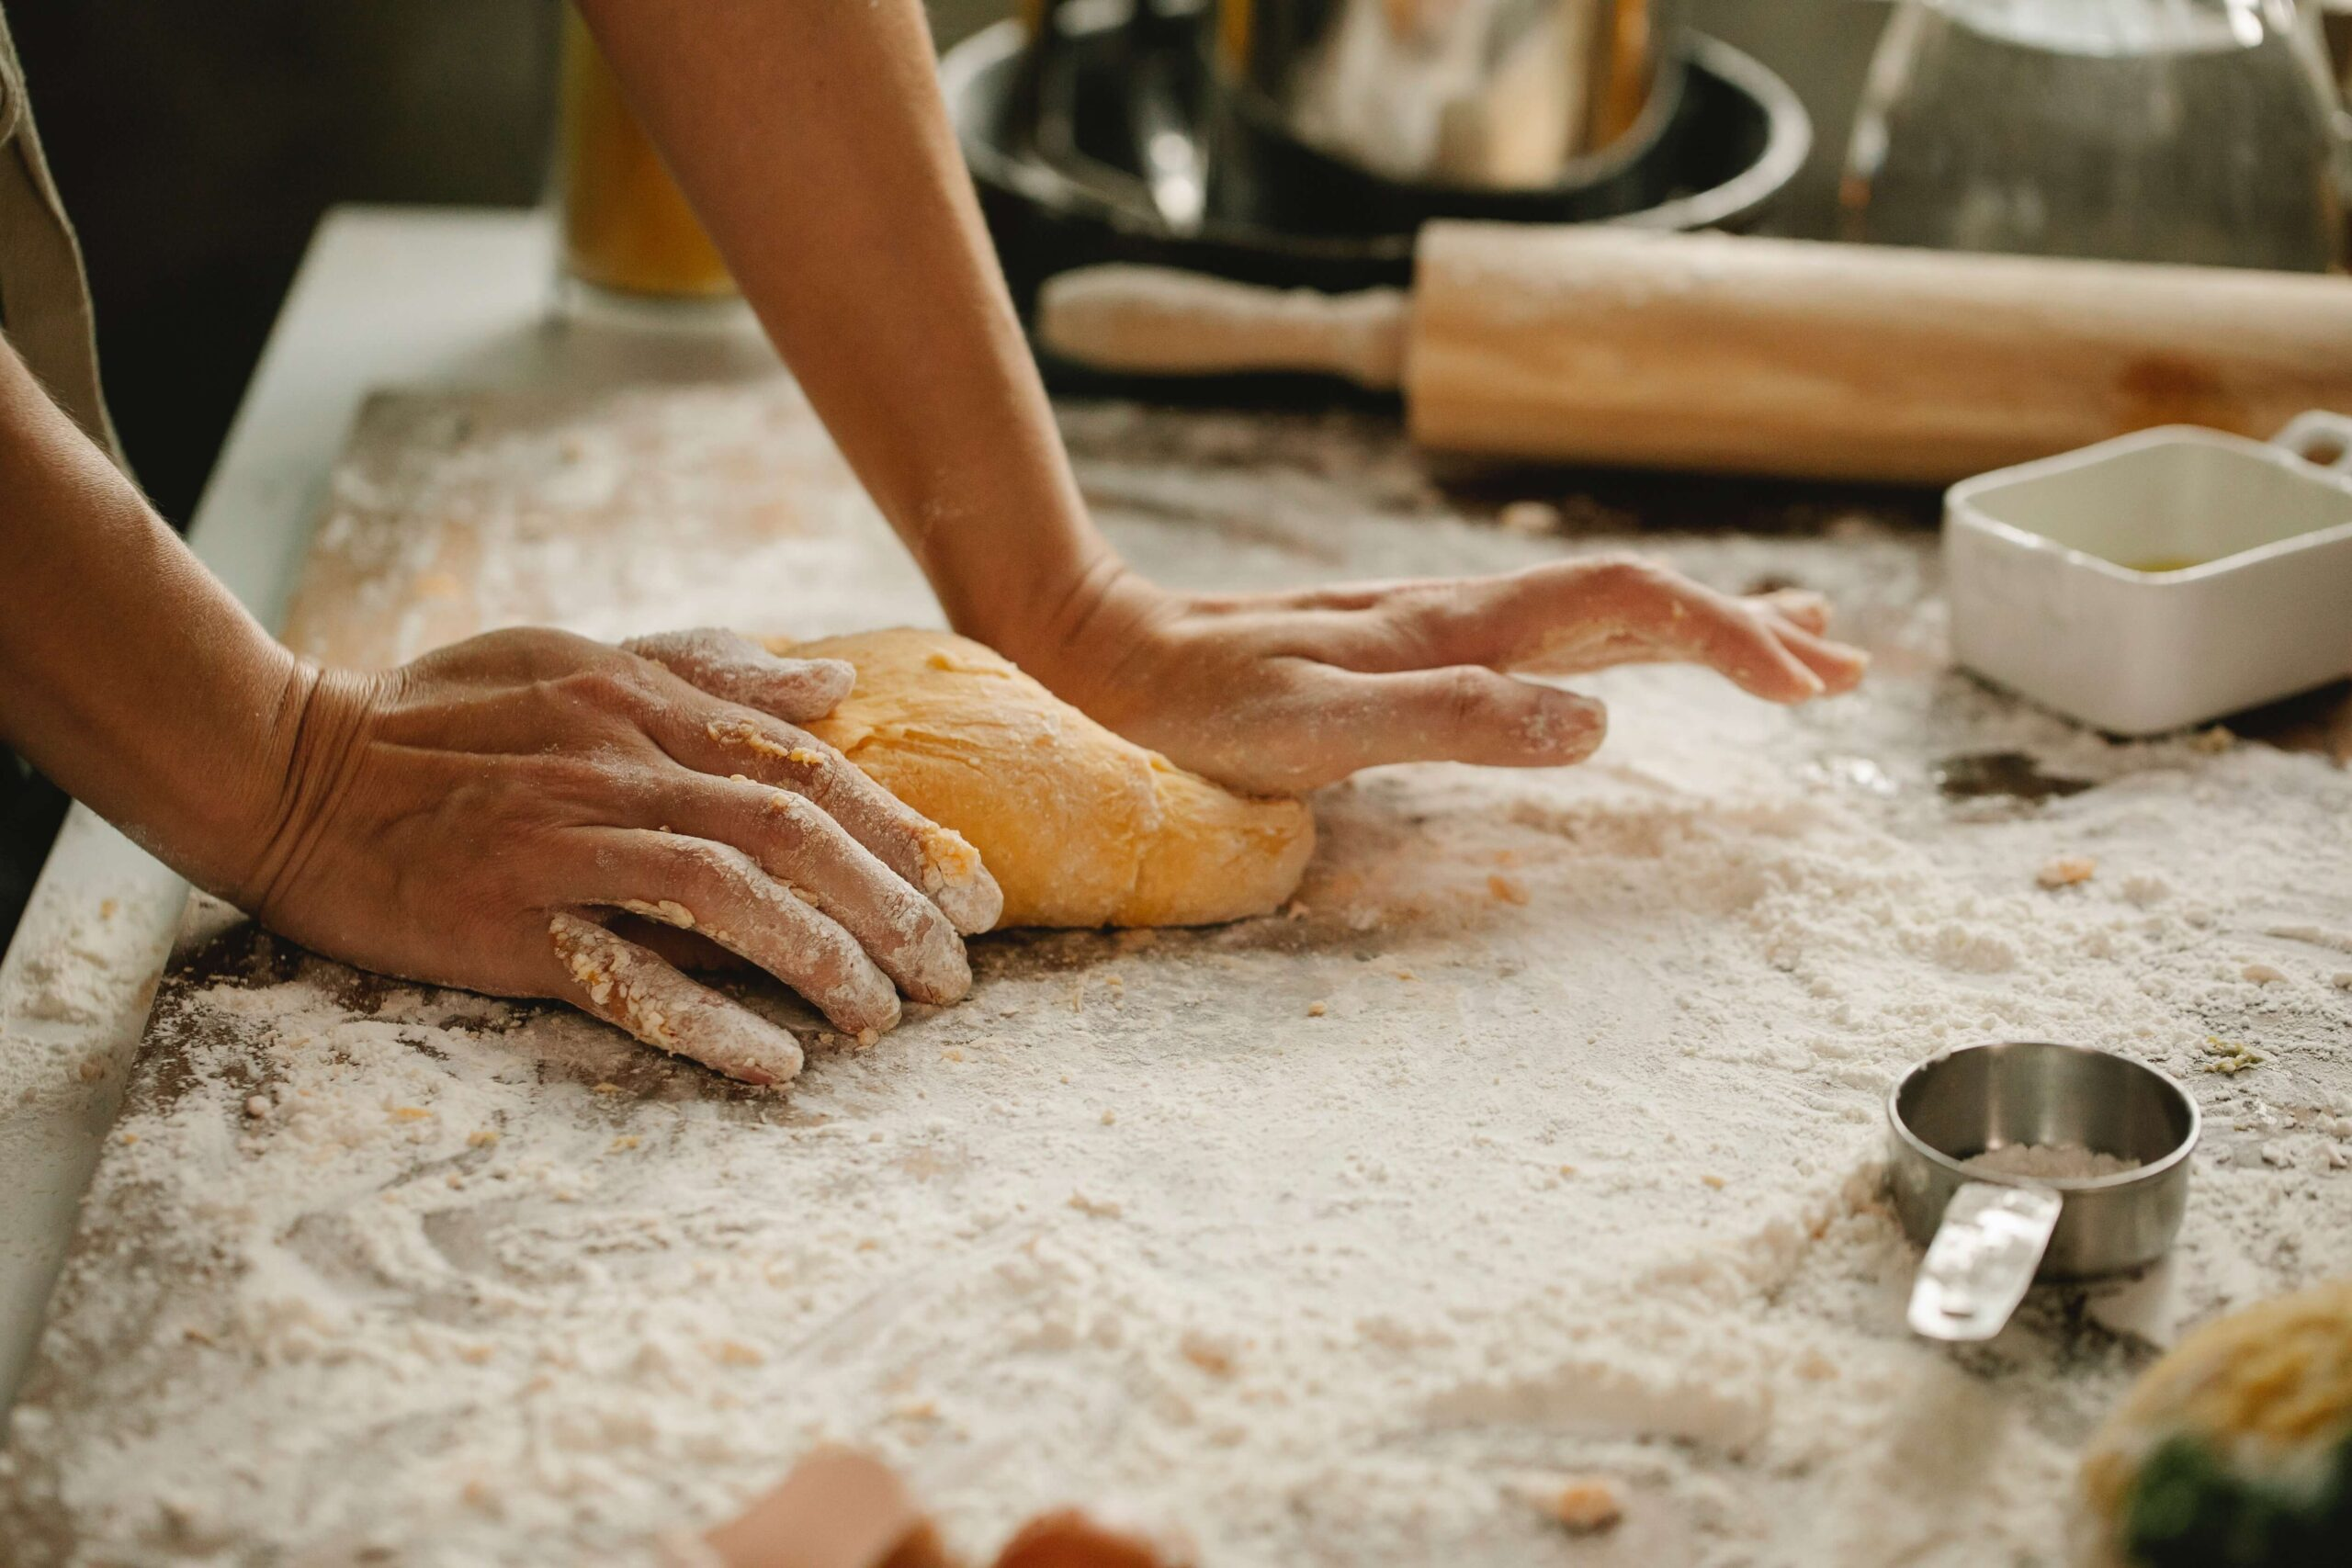 Read more about the article Homemade: Brot selber backen